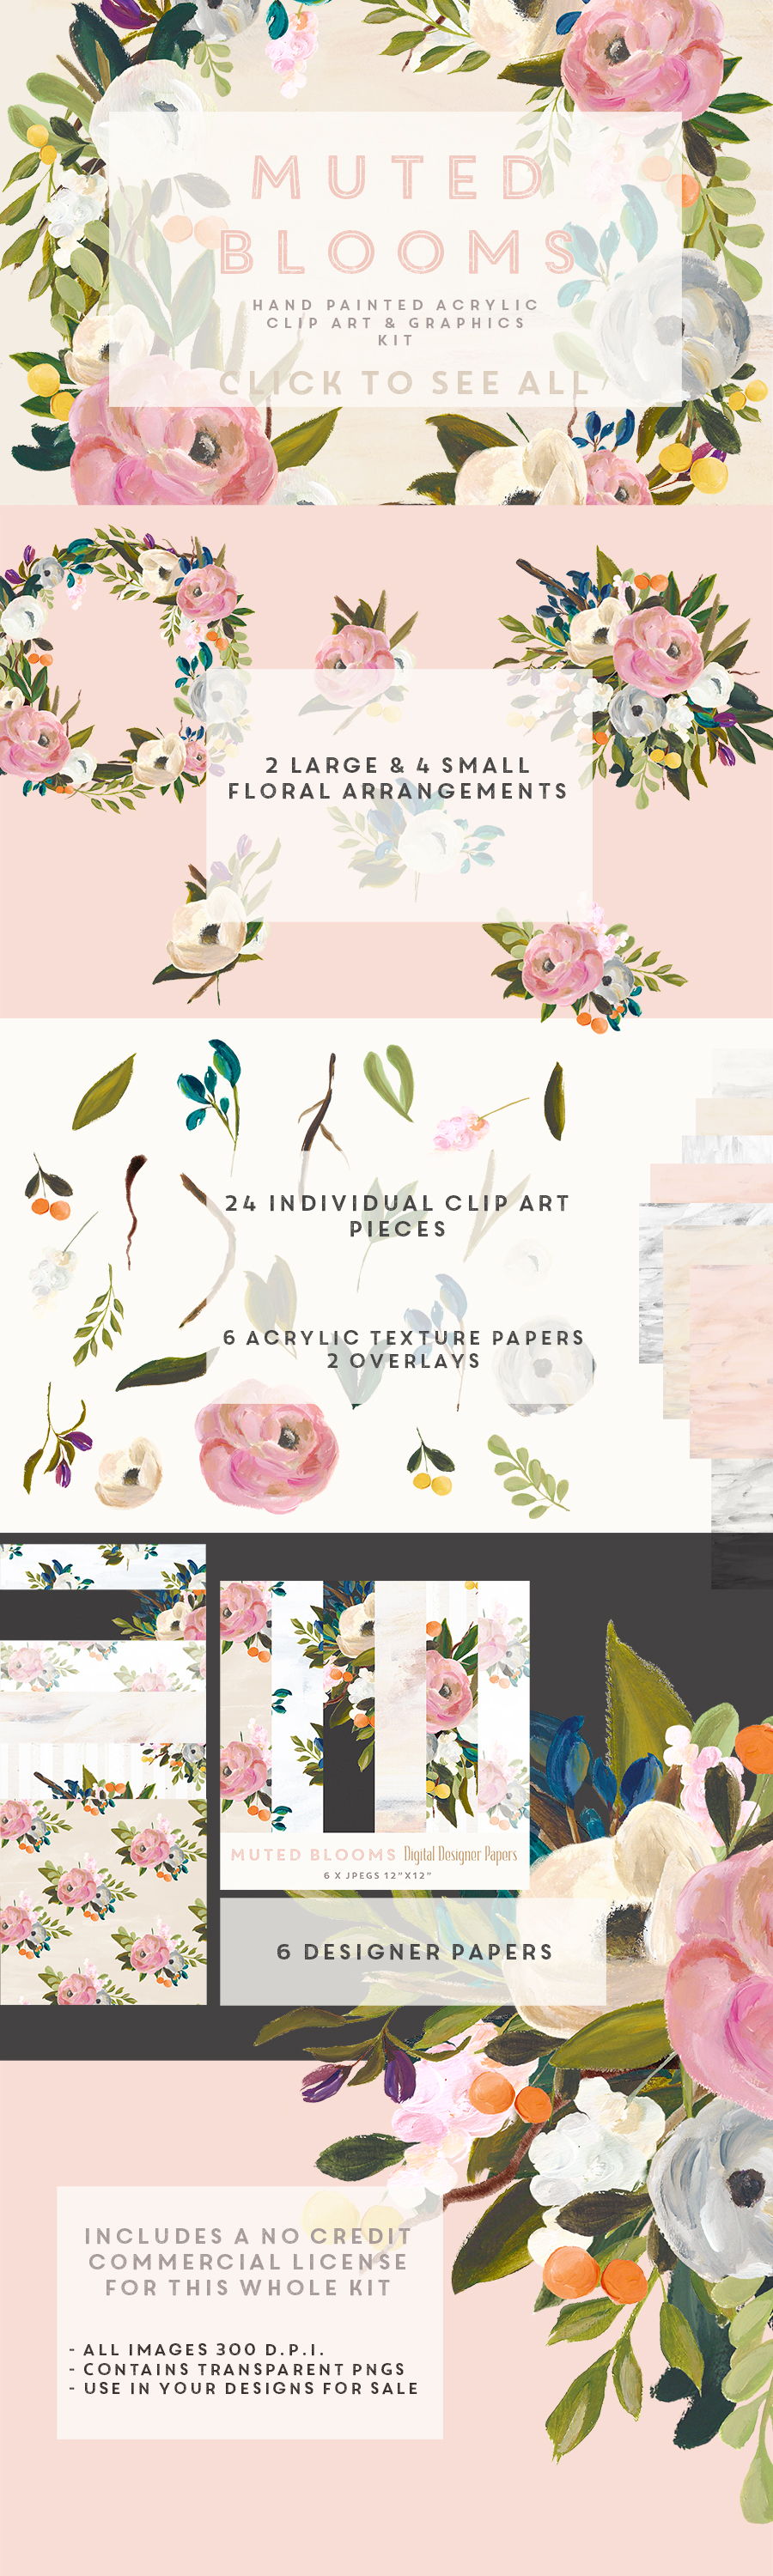 hand painted floral clipart and graphics [ 900 x 3000 Pixel ]